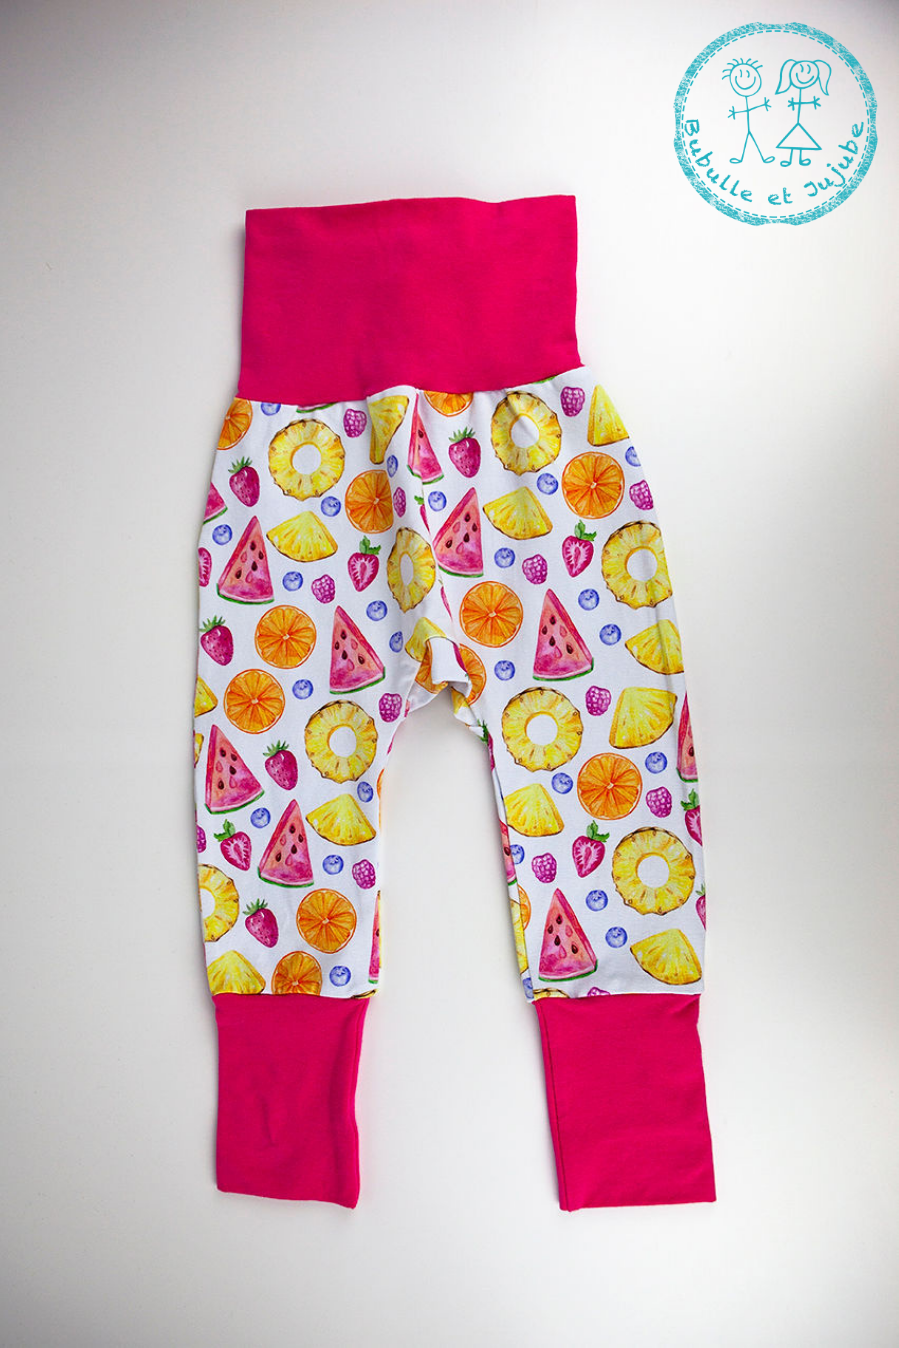 Pantalons évolutifs - Ananas, melon d'eau et fraises / Grow with me pants - Pineapple, watermelon and strawberry